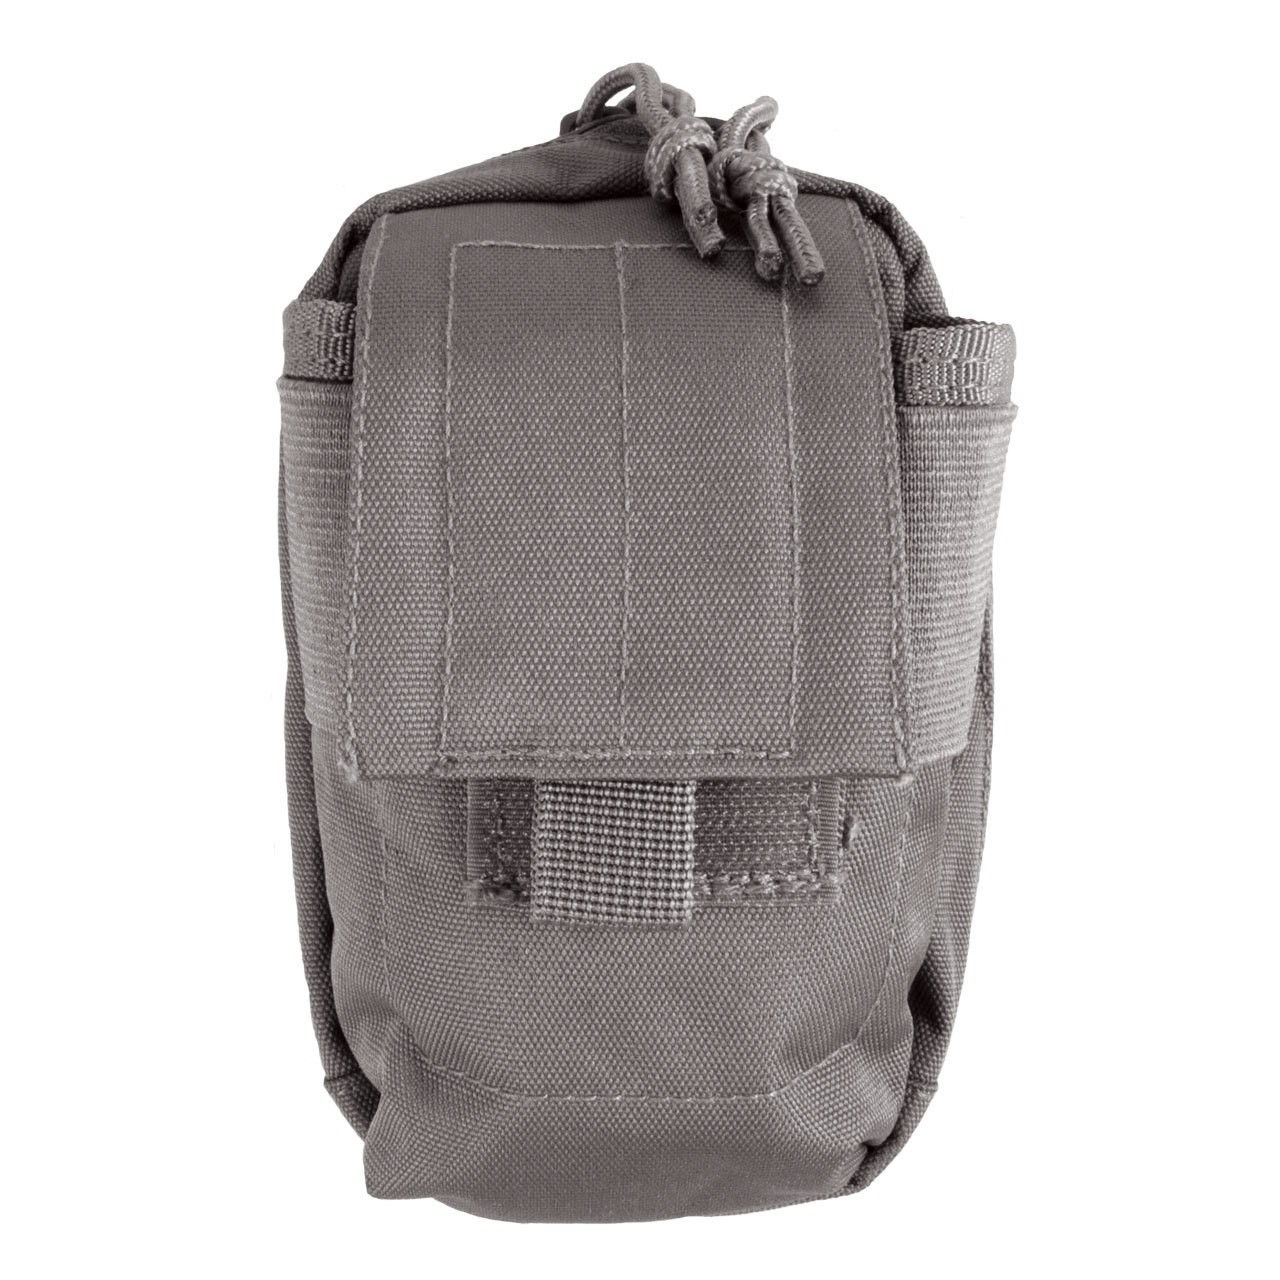 Red Rock Gear MOLLE Media Pouch